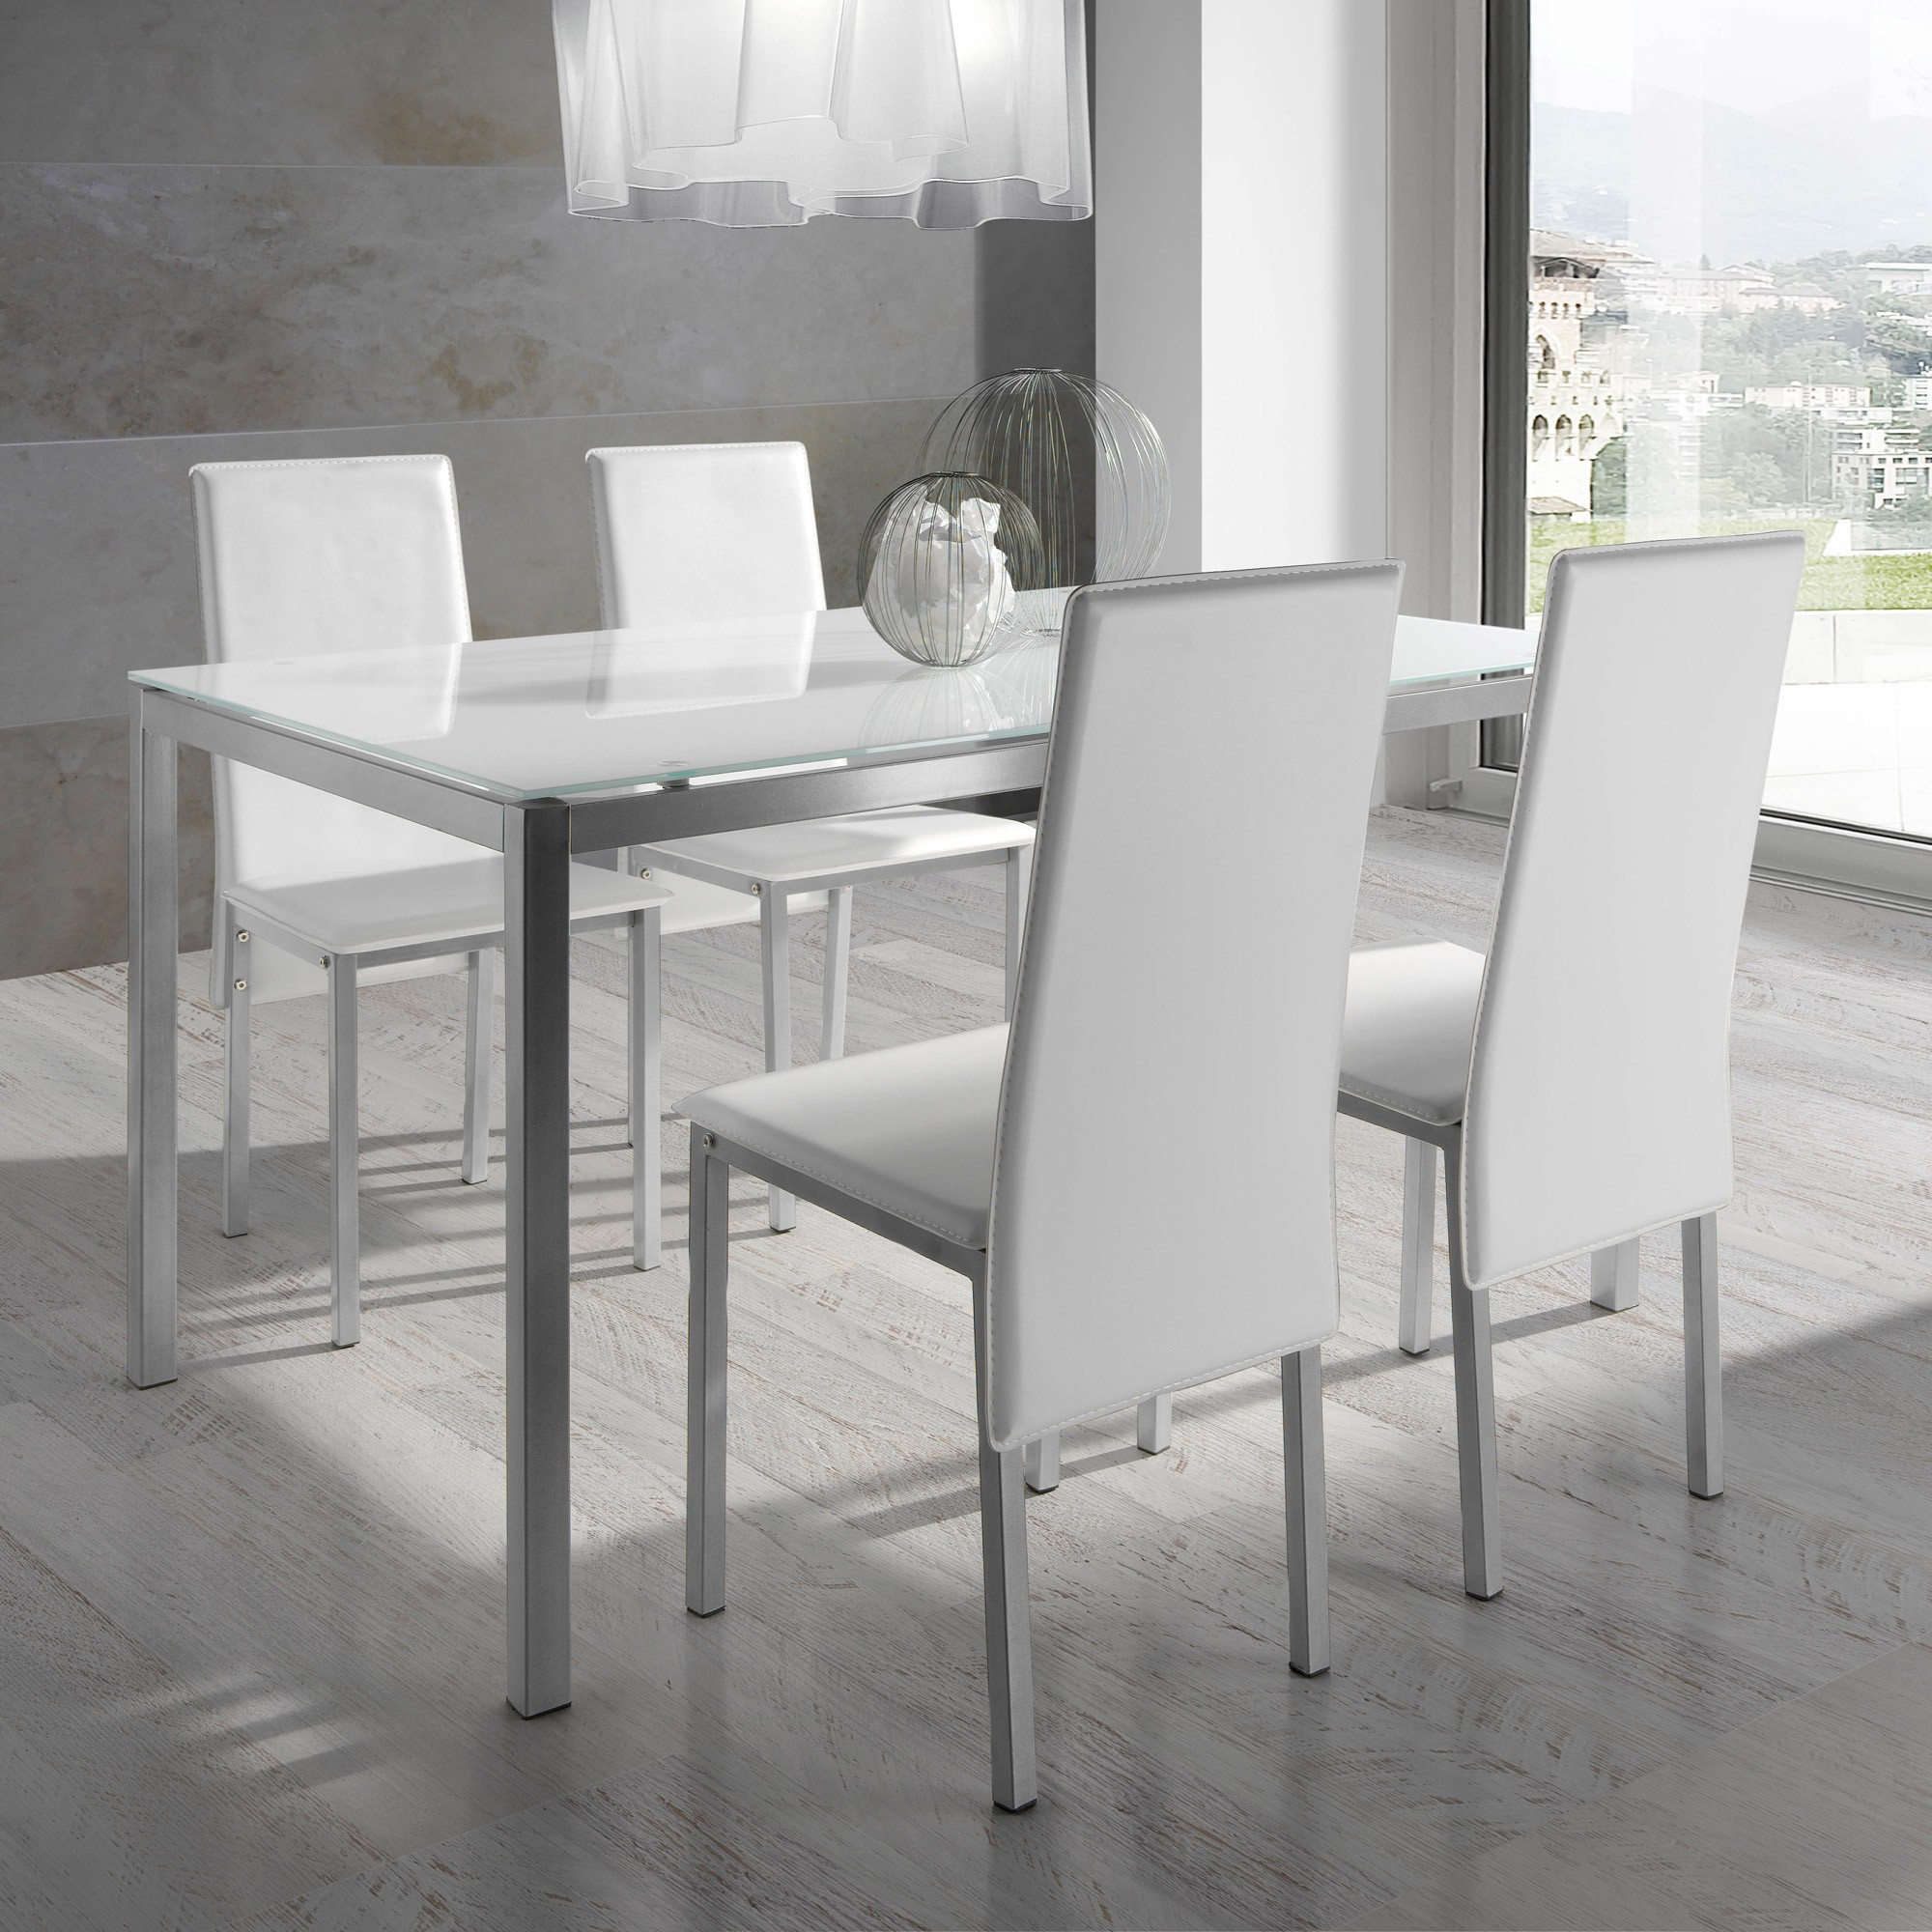 Ensemble table et chaise salle a manger but chaise for Ensemble table chaise design